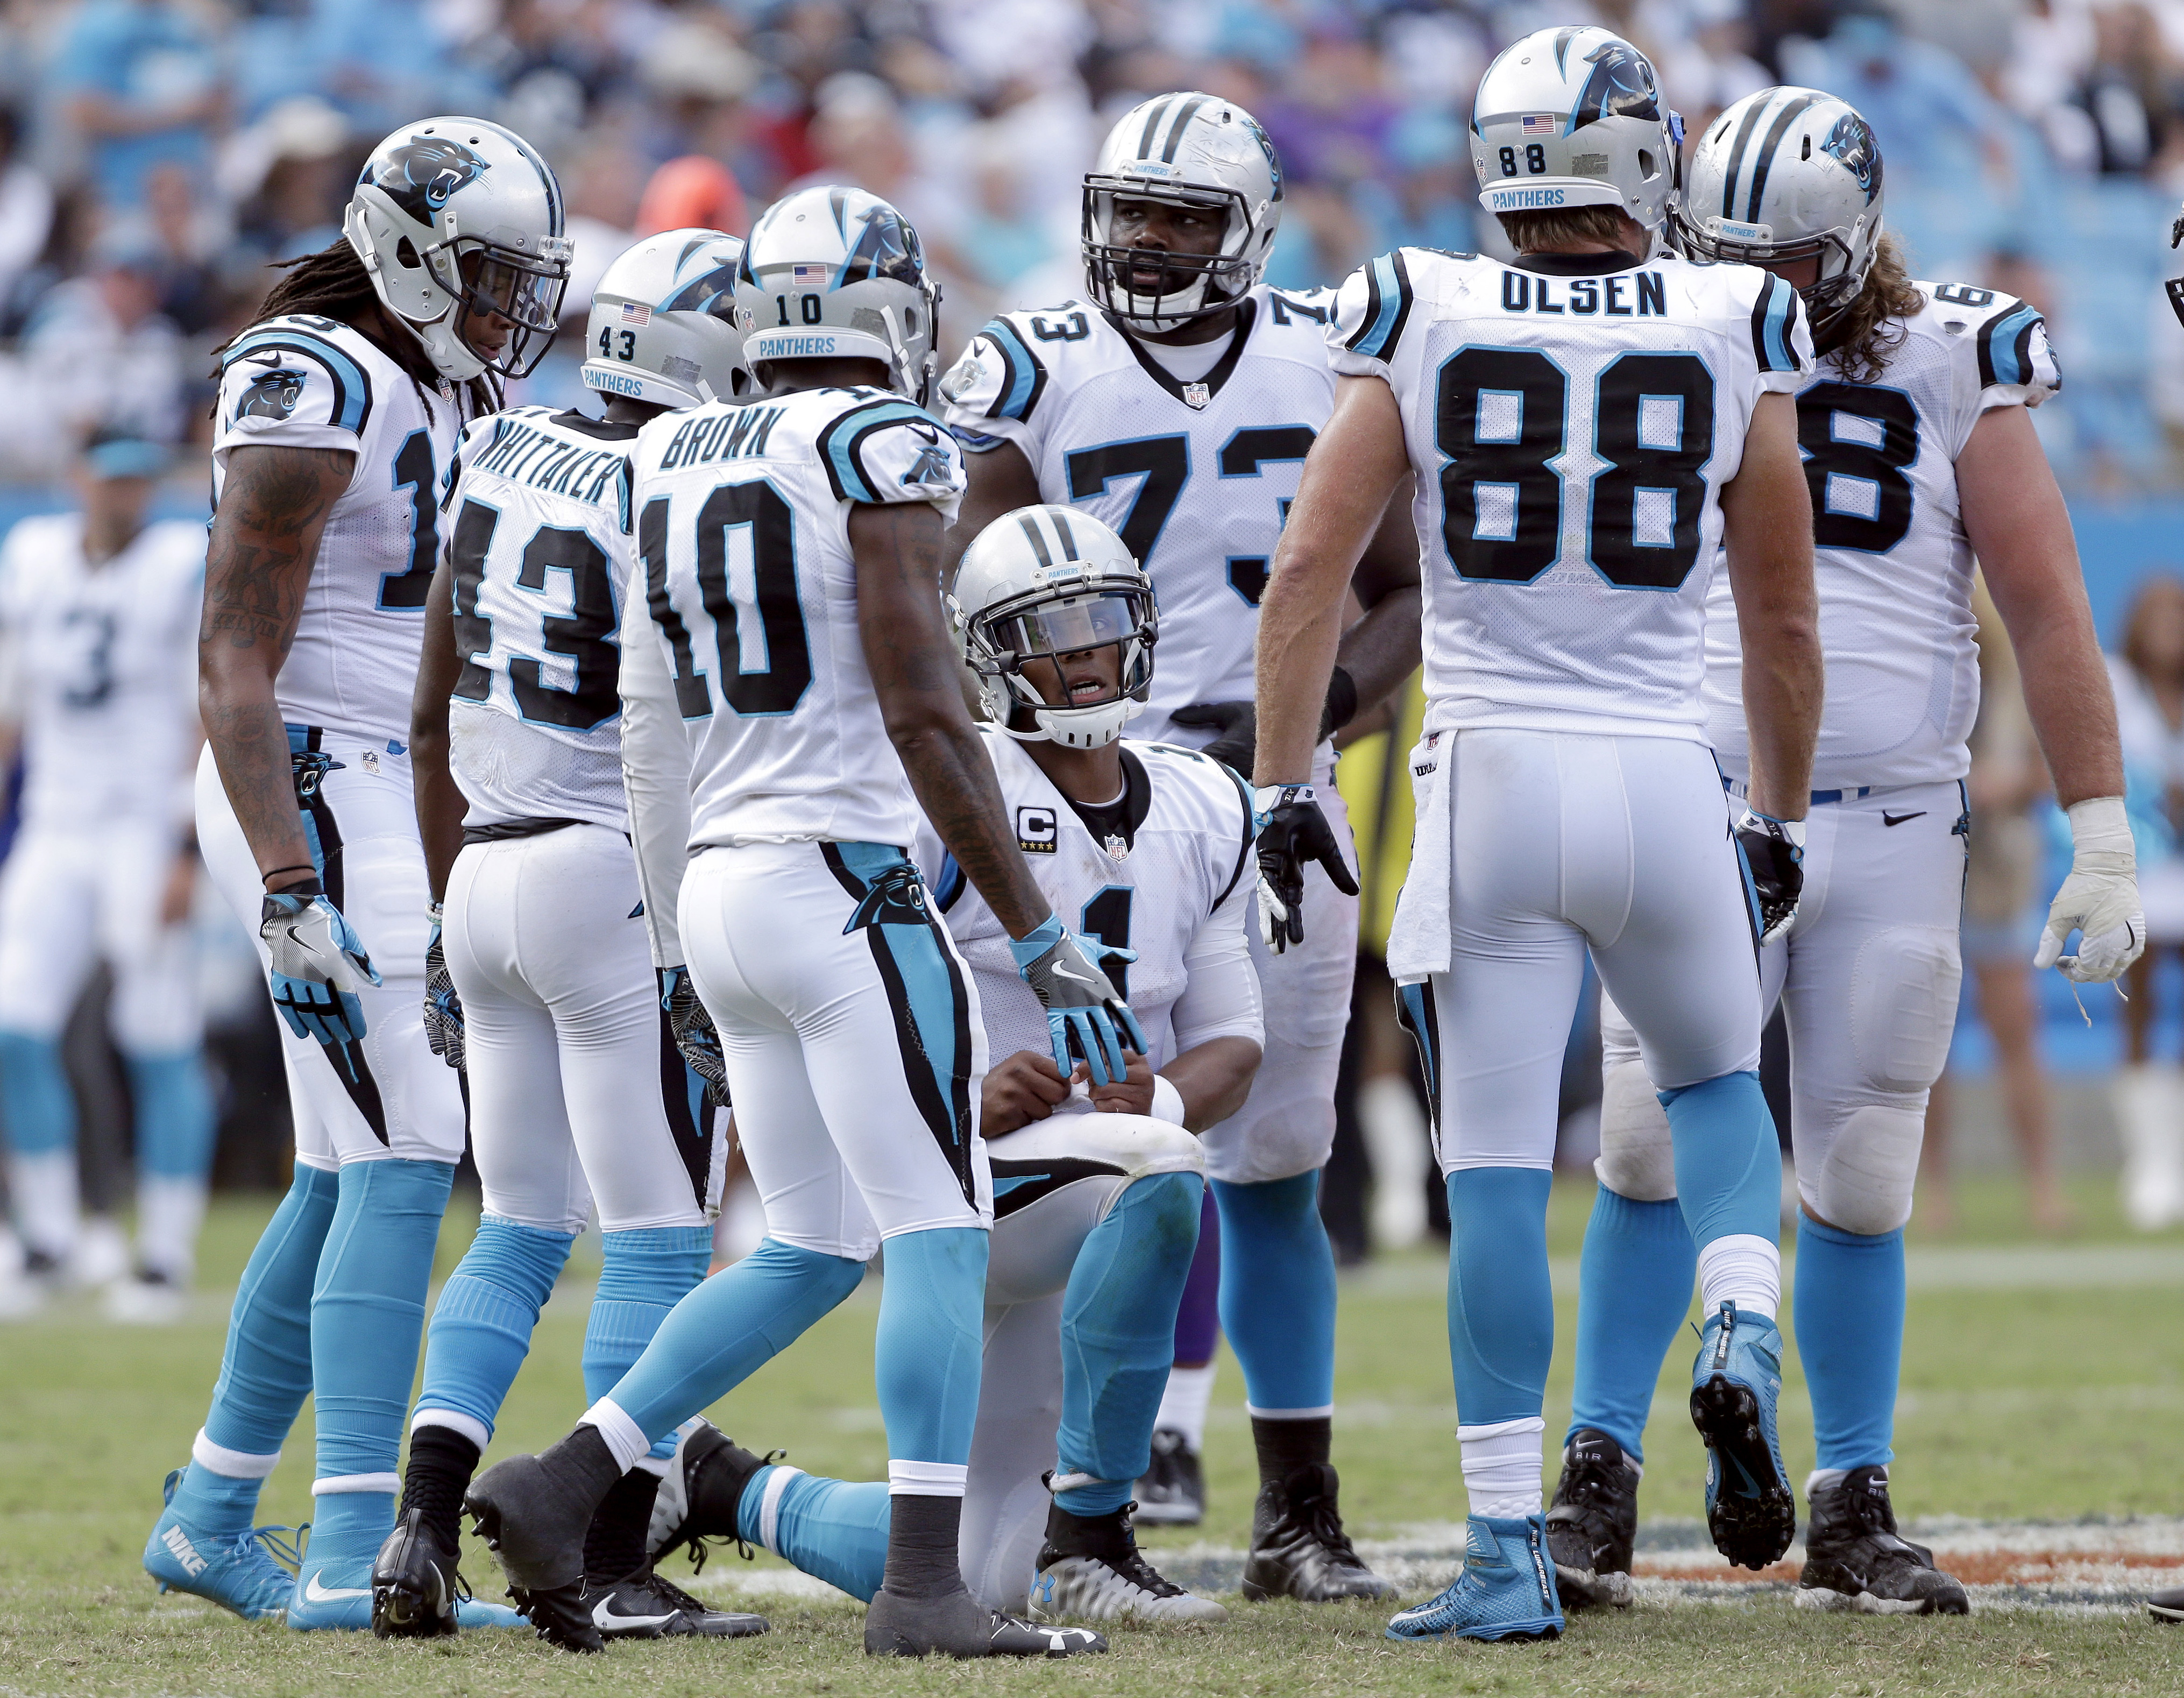 ADVANCE FOR WEEKEND EDITIONS, OCT. 8-9- FILE - In this Sunday, Sept. 18, 2016, file photo, Carolina Panthers' Cam Newton (1) kneels in the huddle as he tries to find a way to score against the Minnesota Vikings during the second half of an NFL football ga